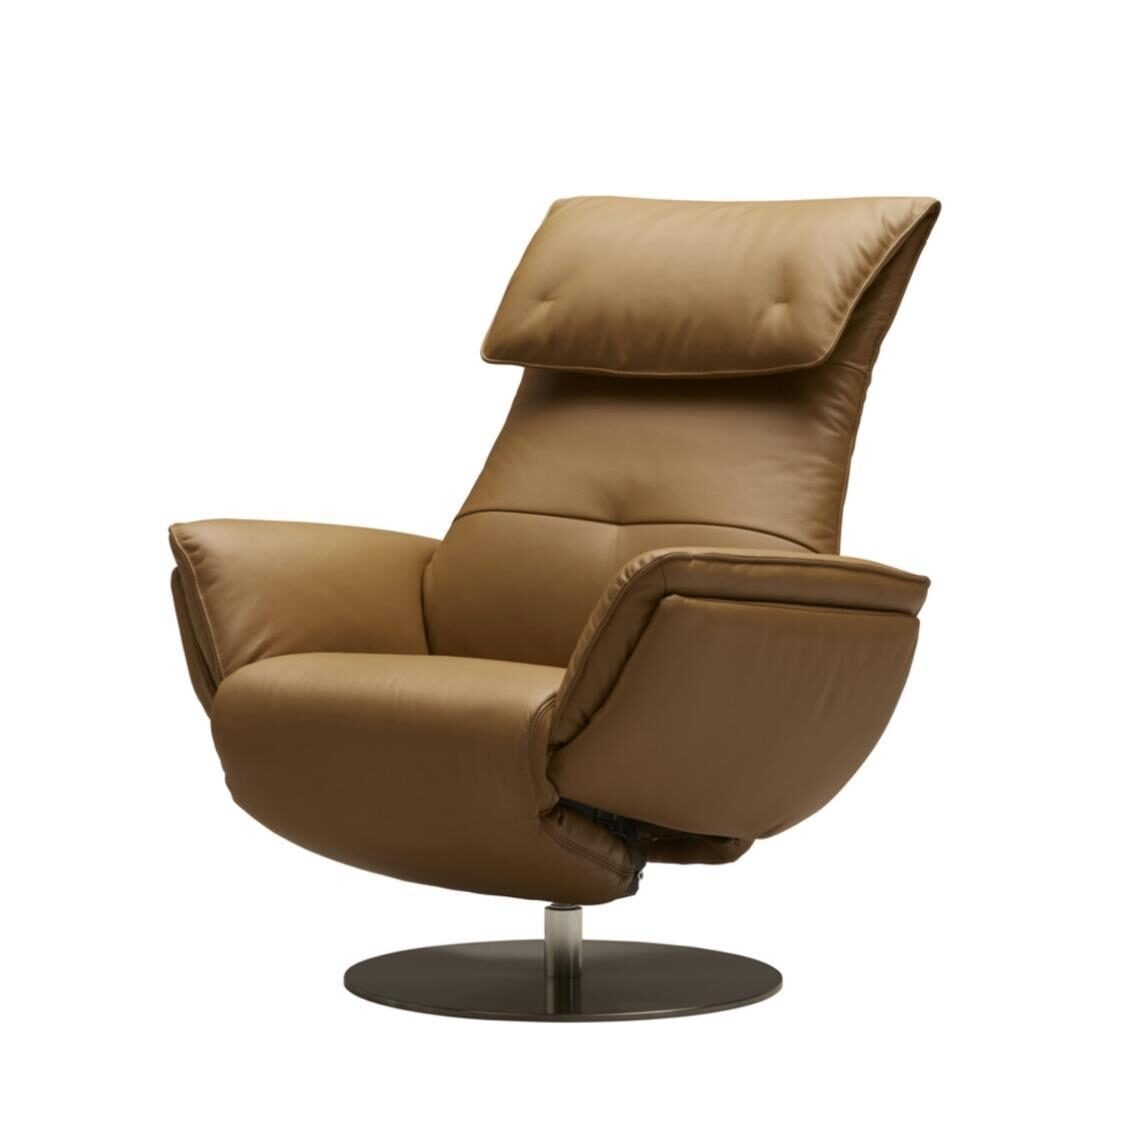 Wolke Chair - Full Leather L665L Camel